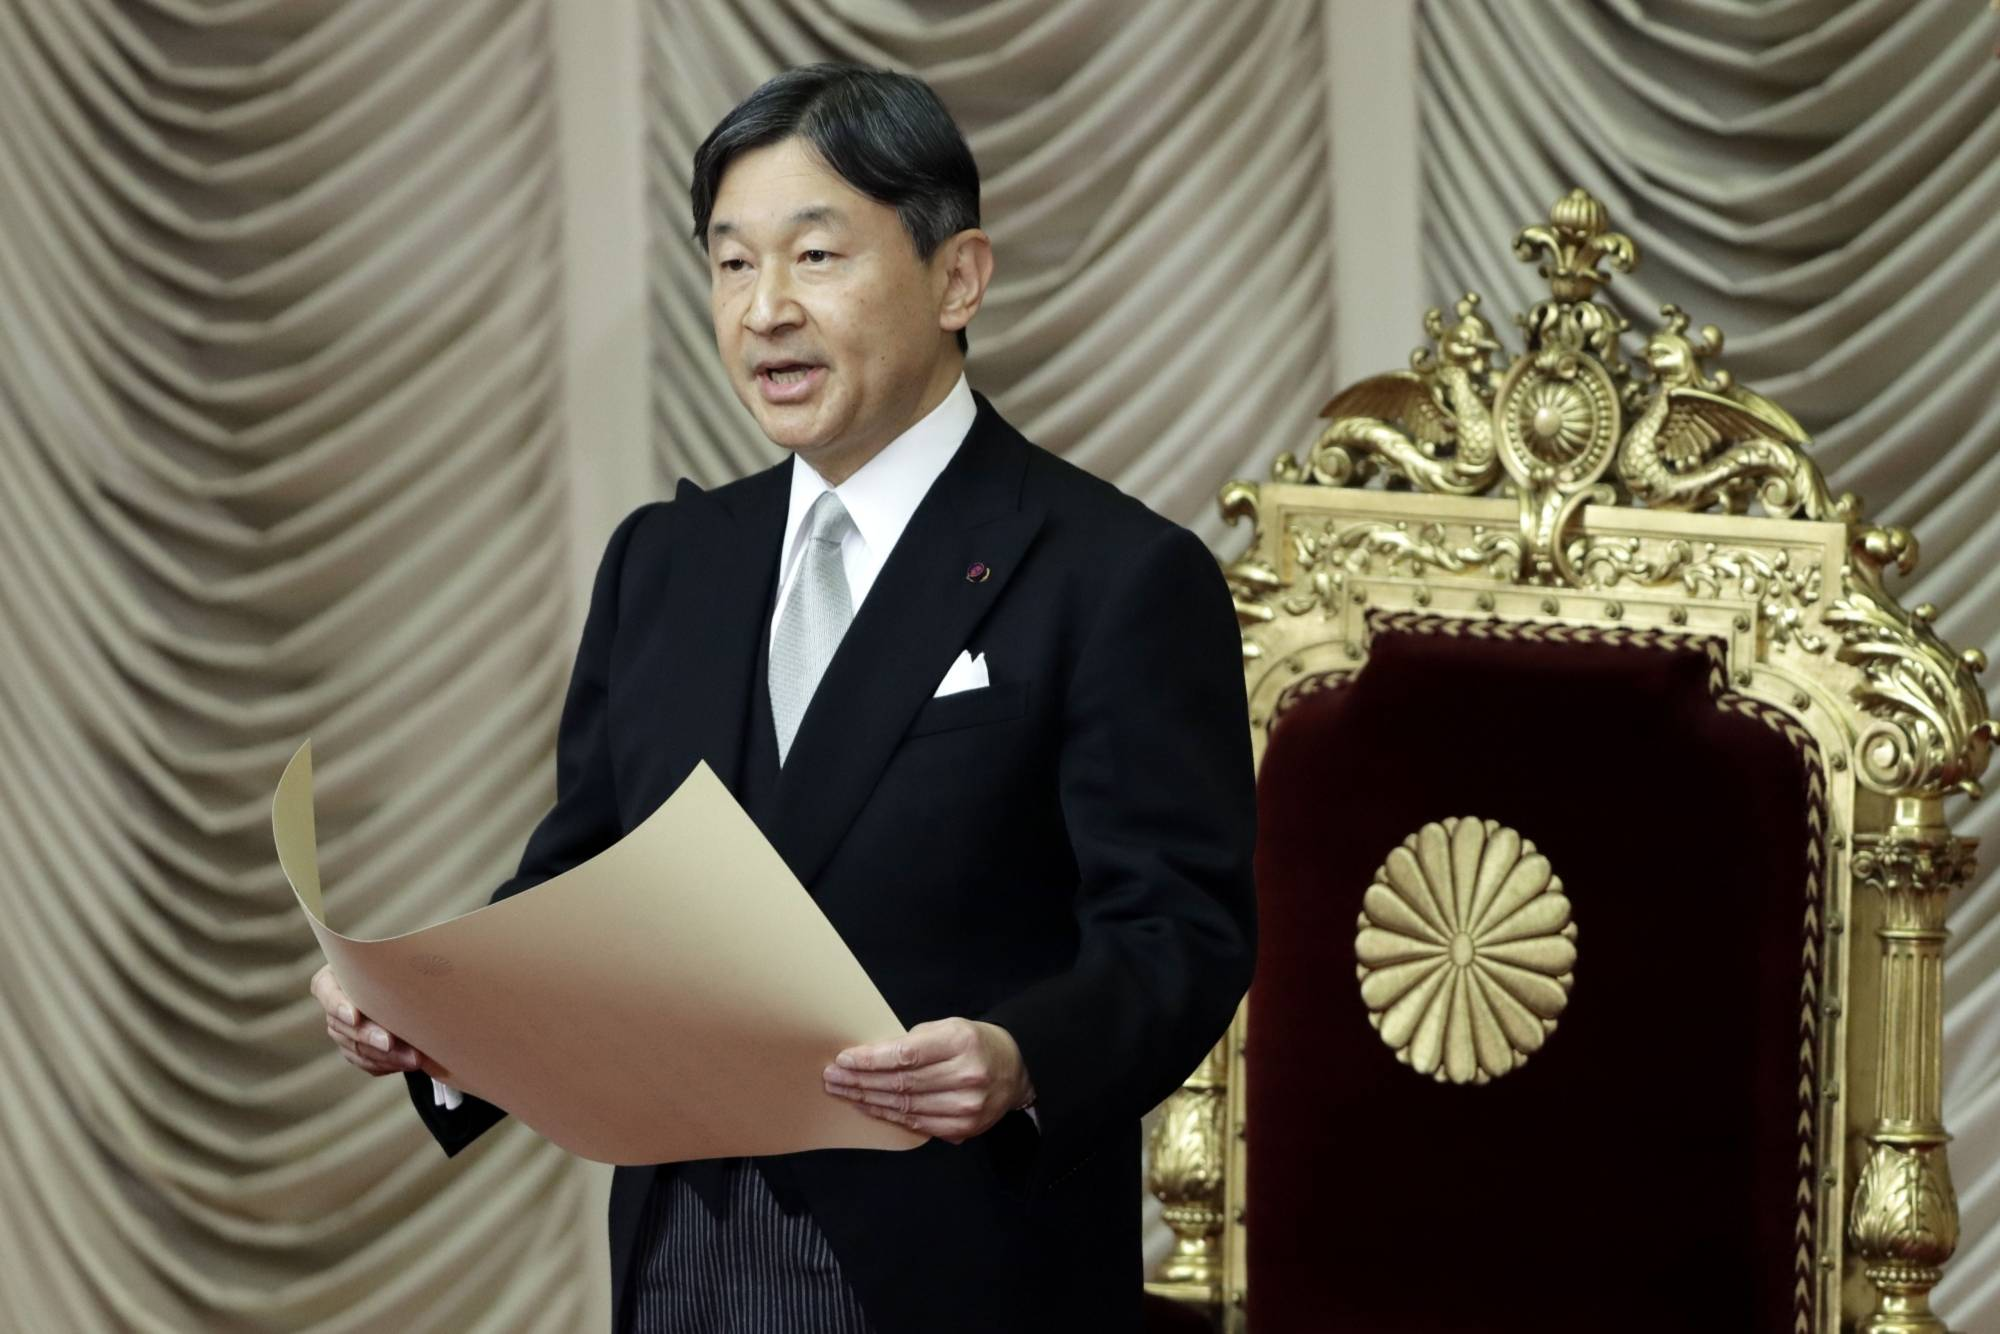 Emperor Naruhito will attend the opening ceremony of the Tokyo Olympics on Friday. | BLOOMBERG